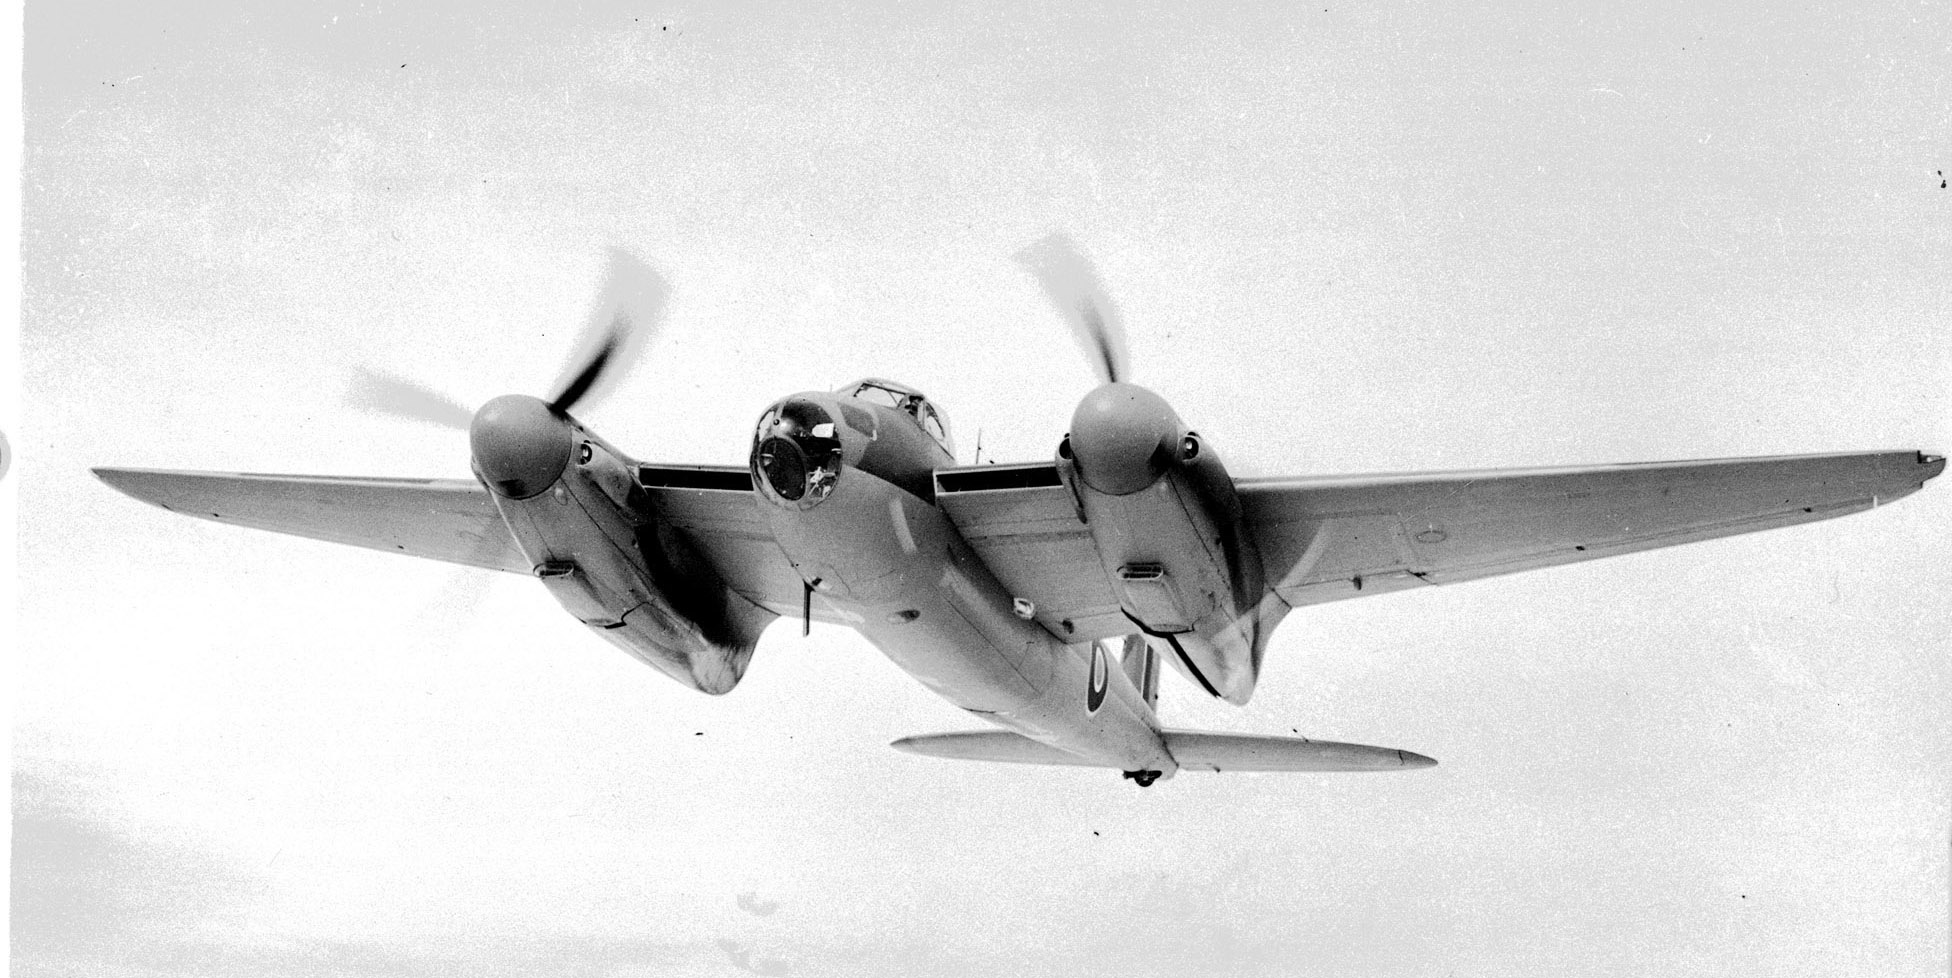 Une photo d'un Mosquito B Mk 25 en vol prise le 25 janvier 1943. PHOTO : Archives du MDN, PL-14570